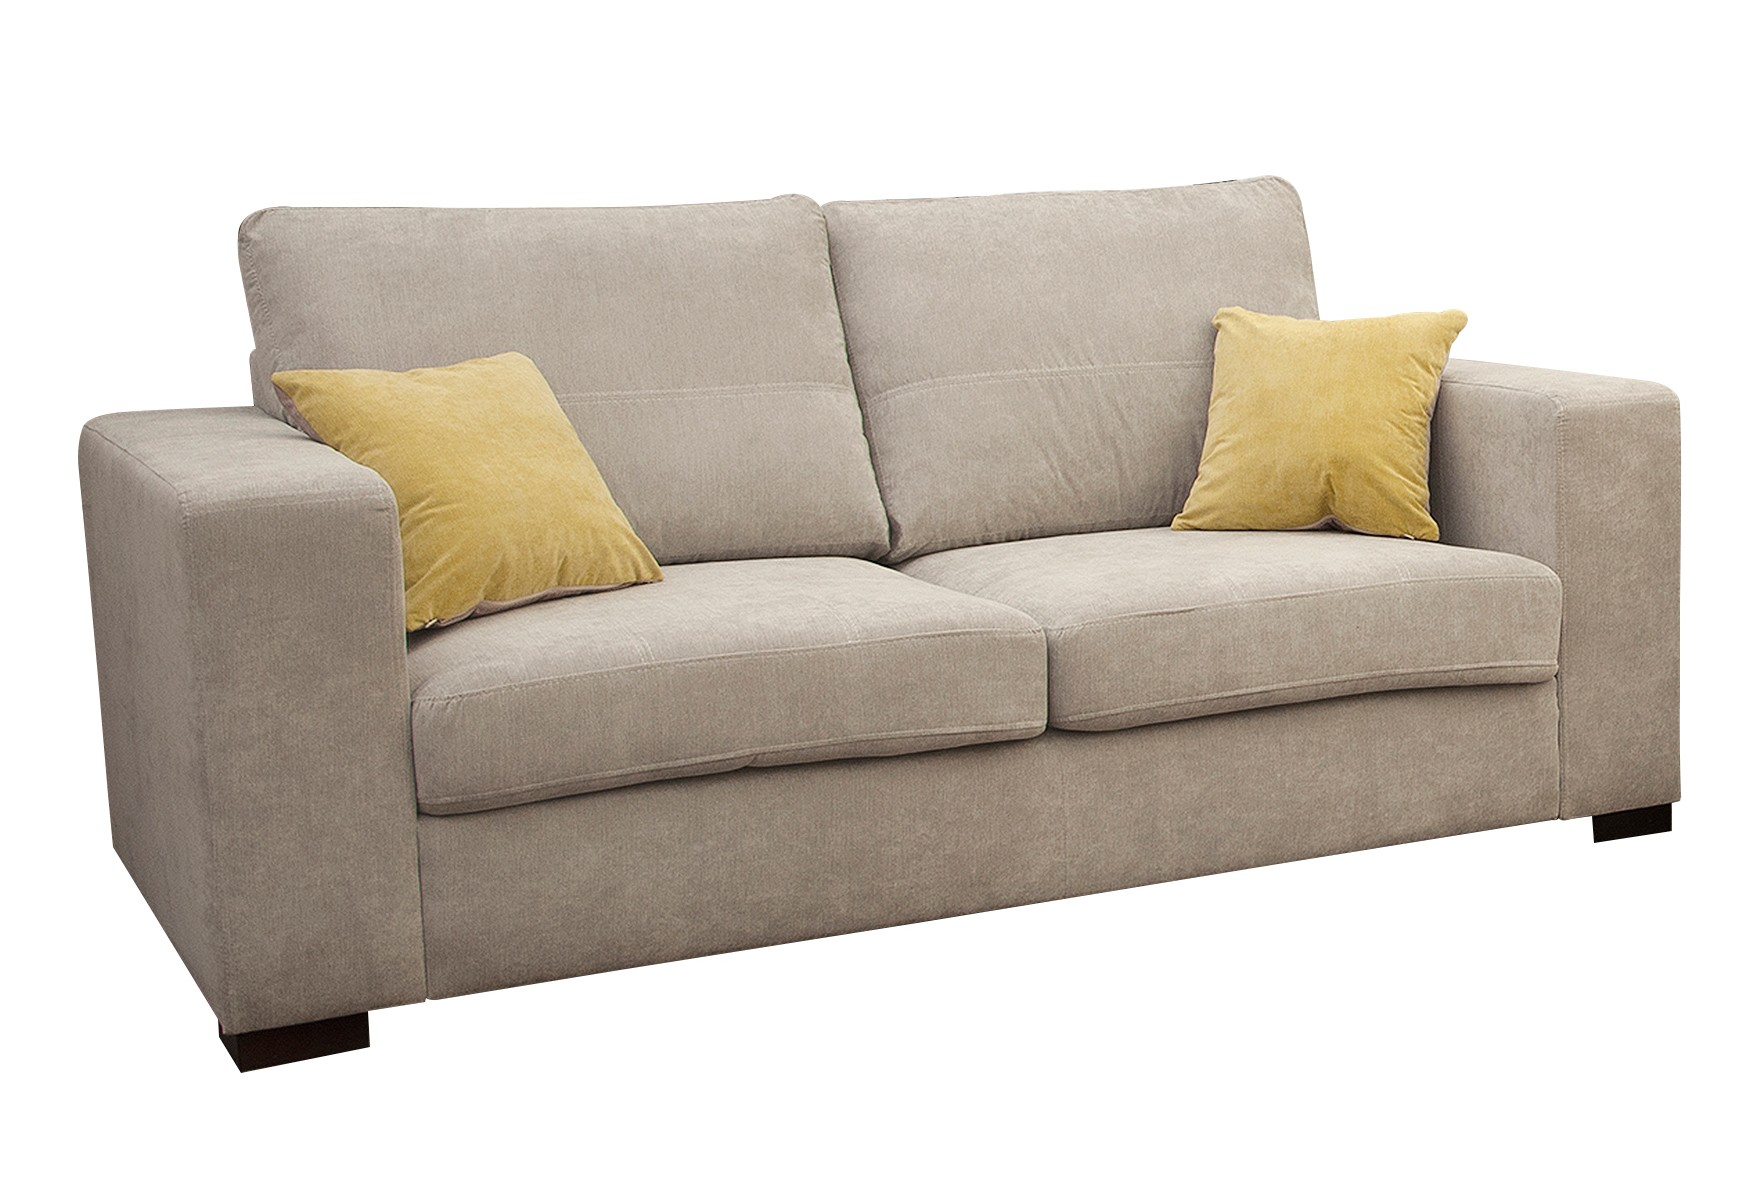 Layla 3 Seater